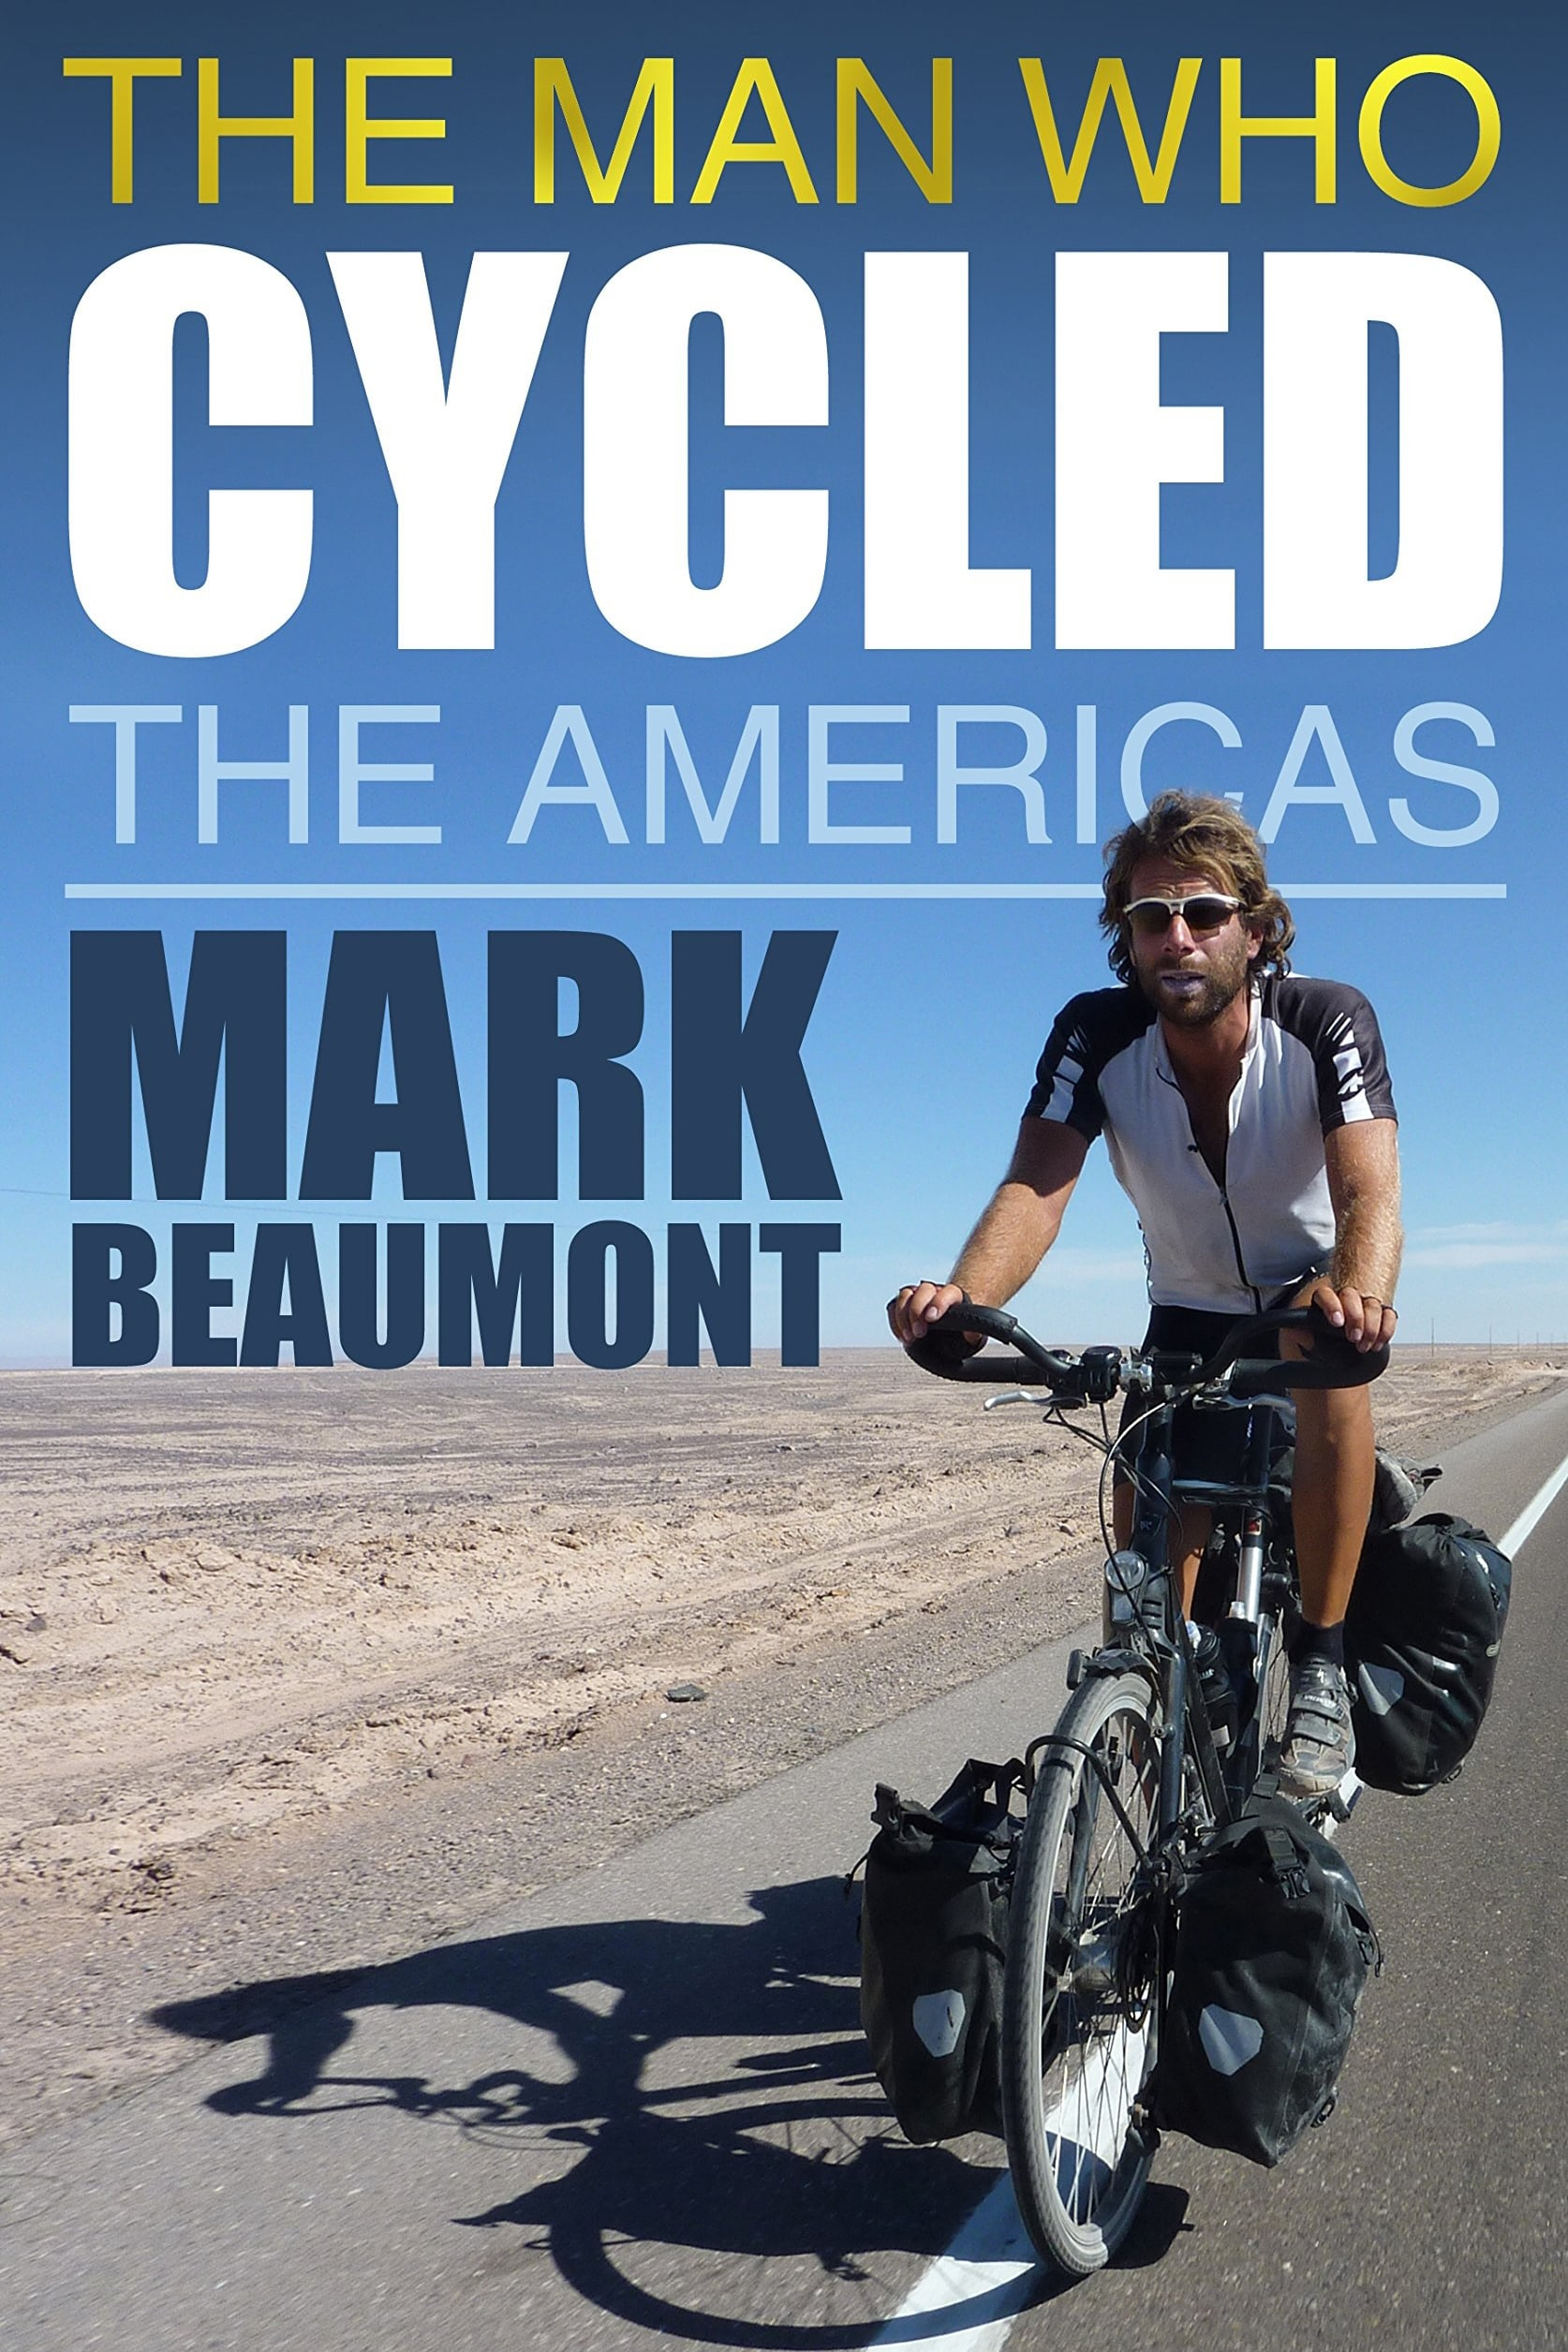 The Man Who Cycled The Americas (2010)